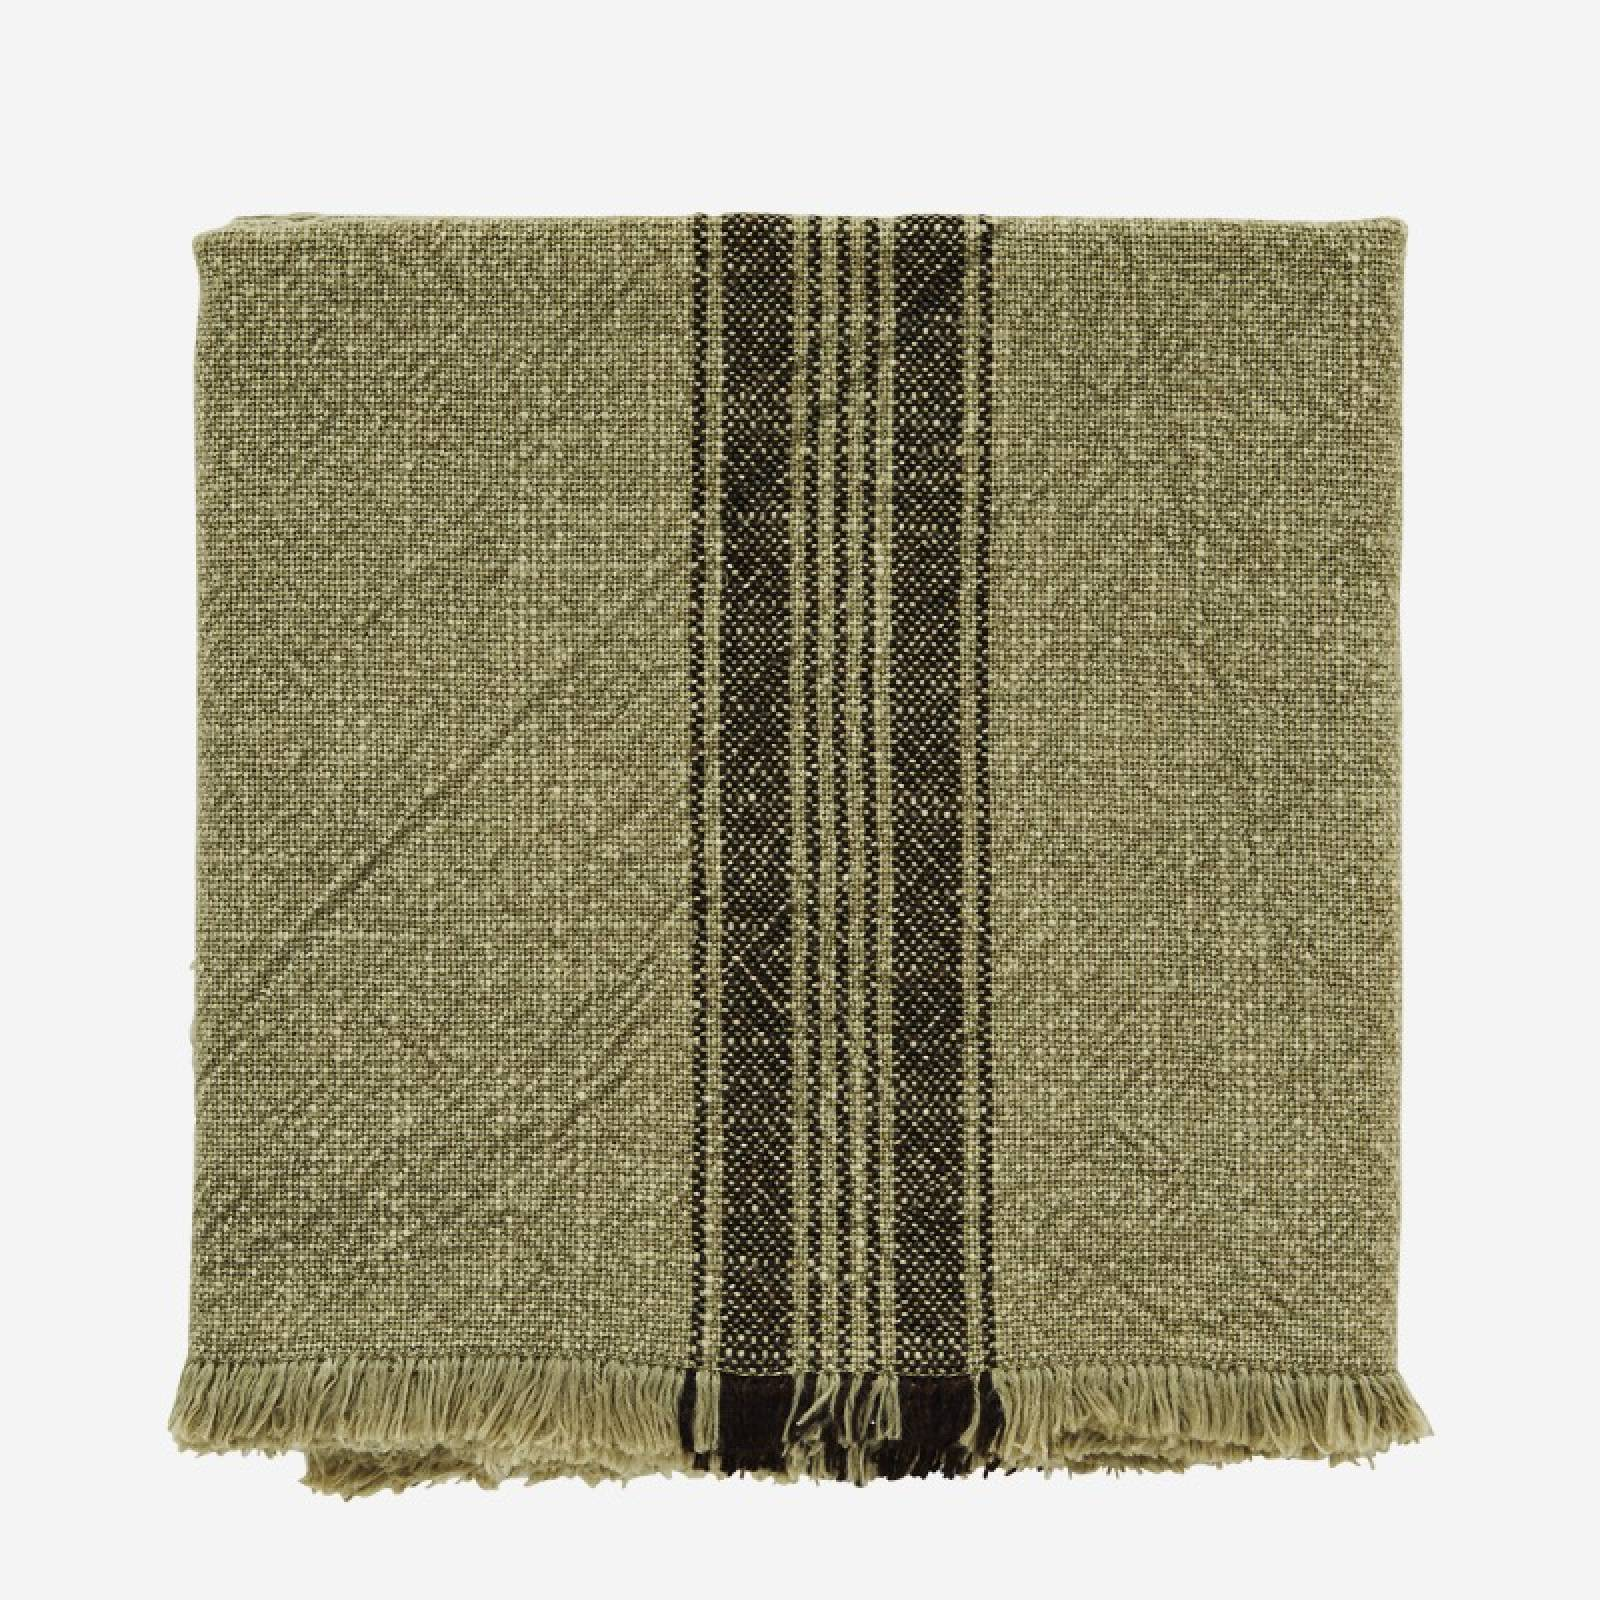 Striped Cotton Tea Towel With Fringing In Khaki